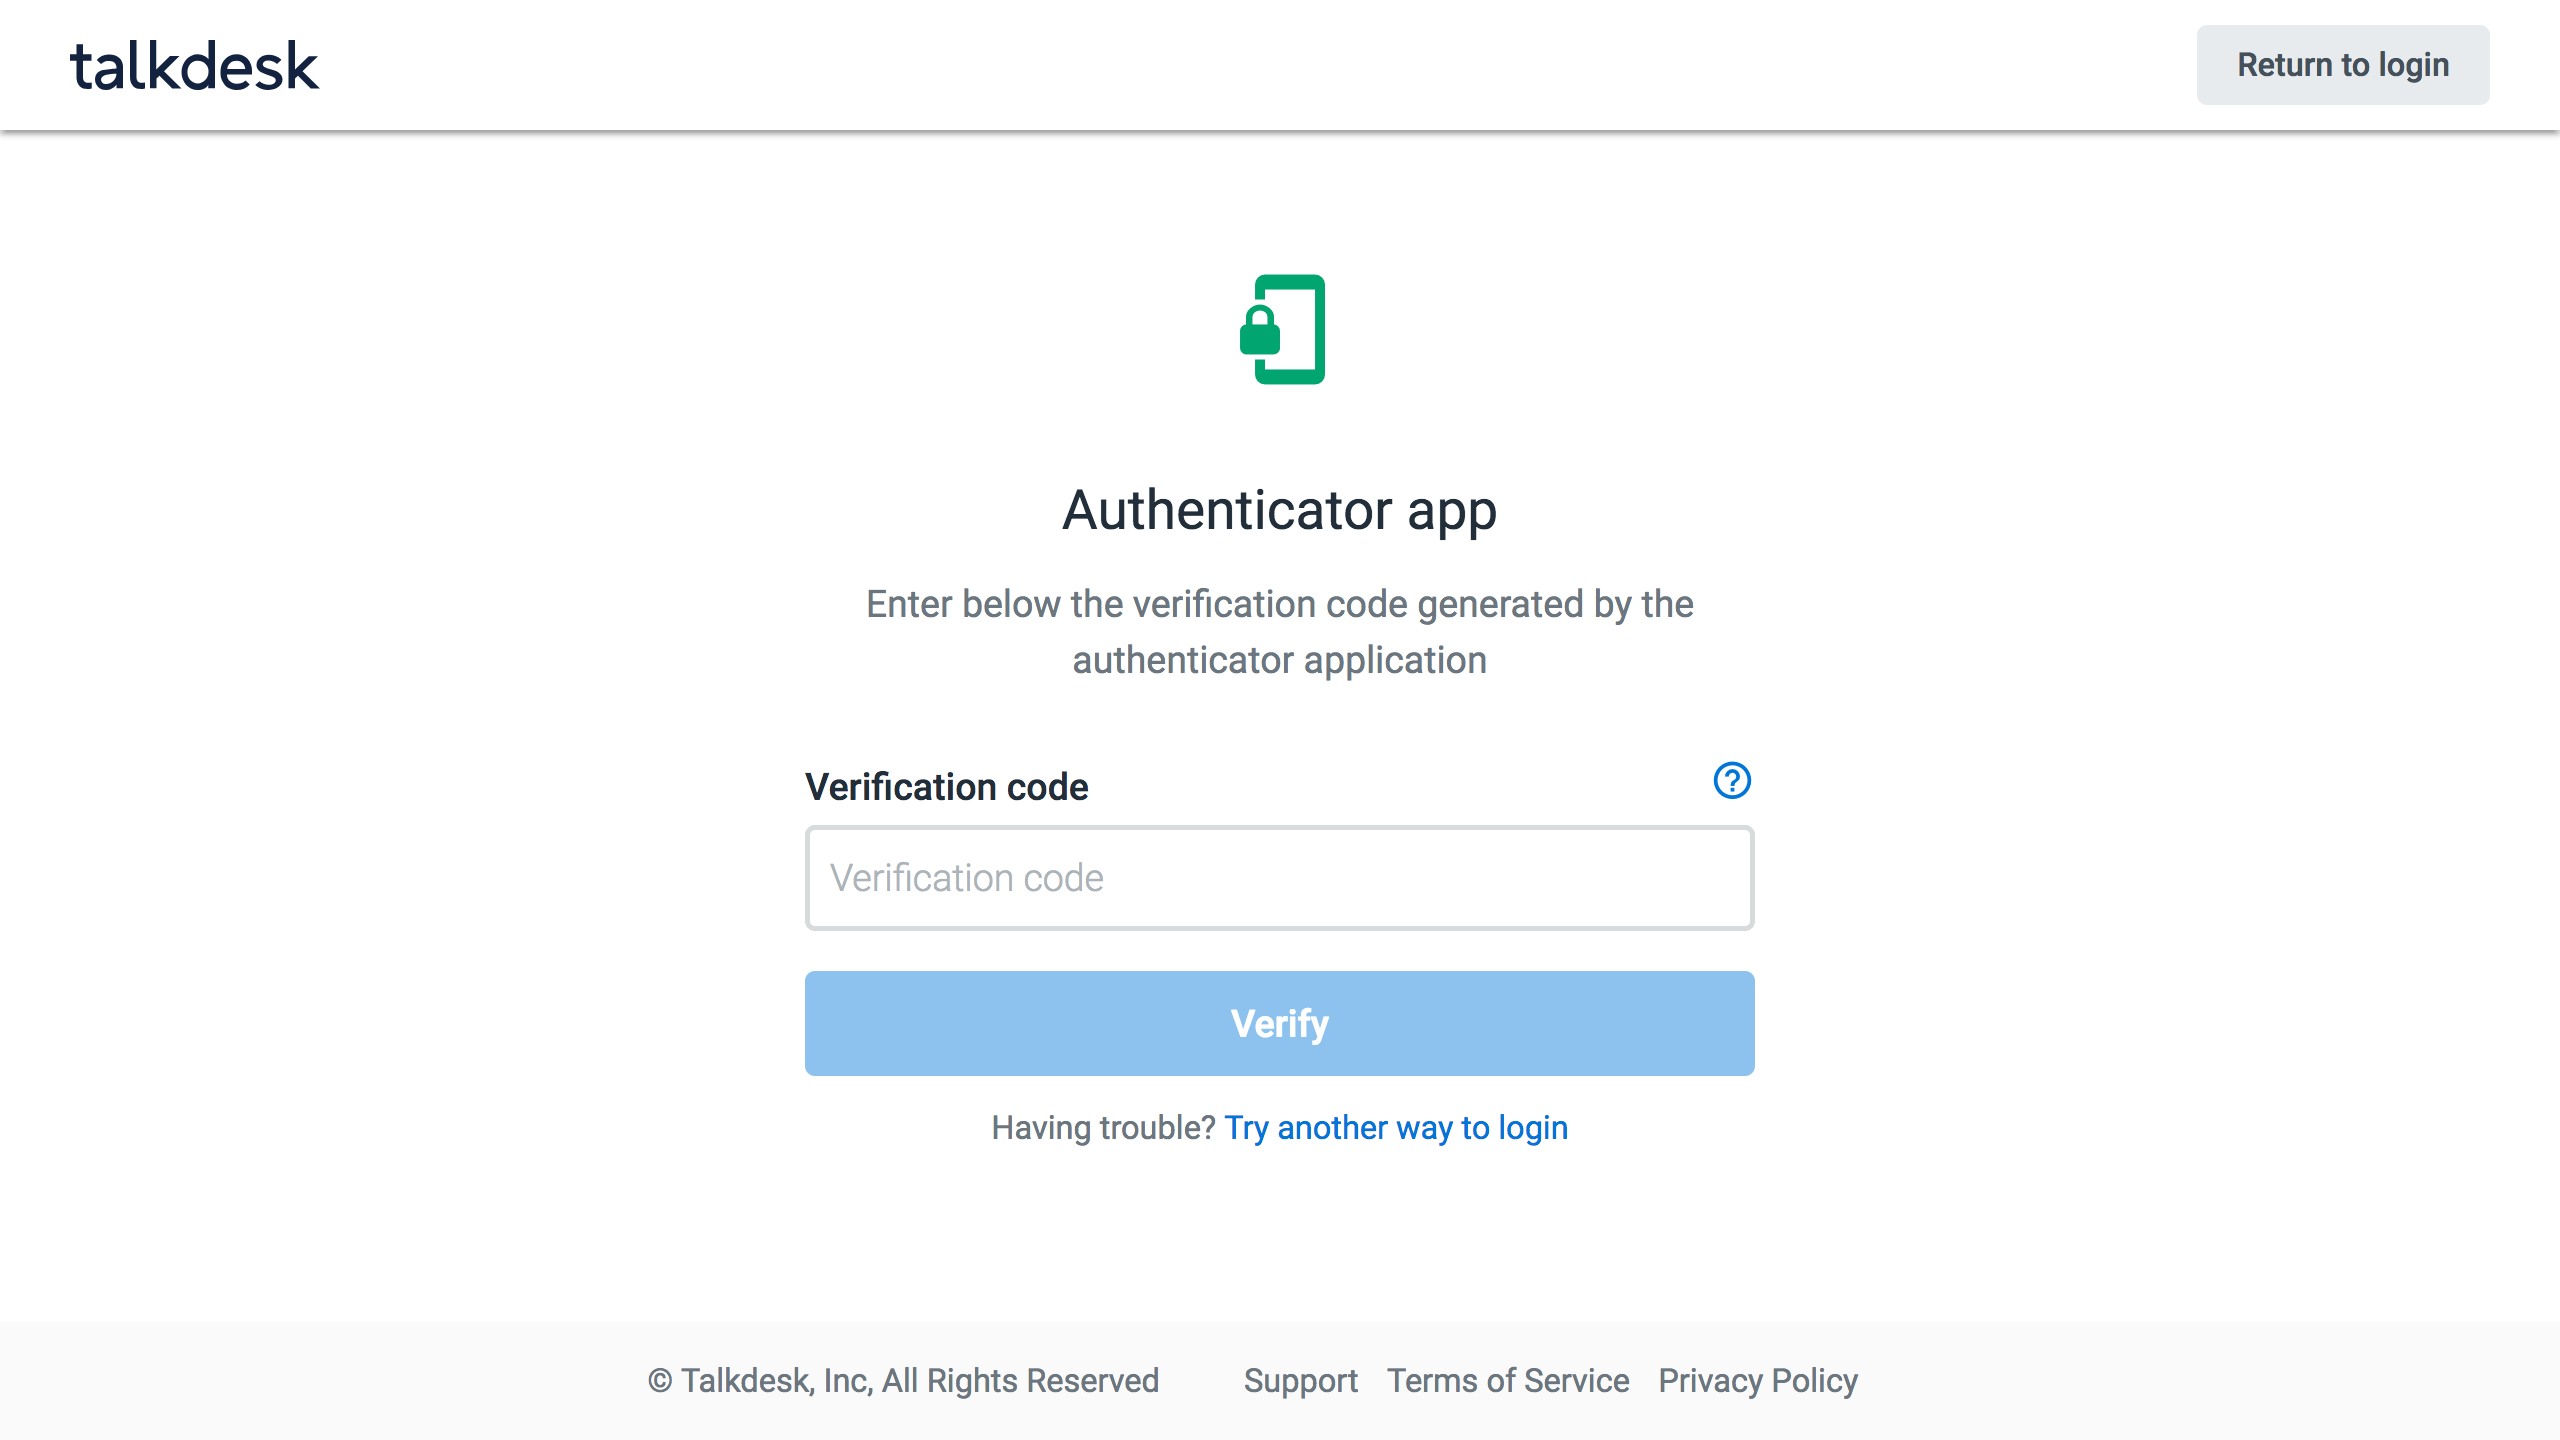 Authenticatoapp-login.png